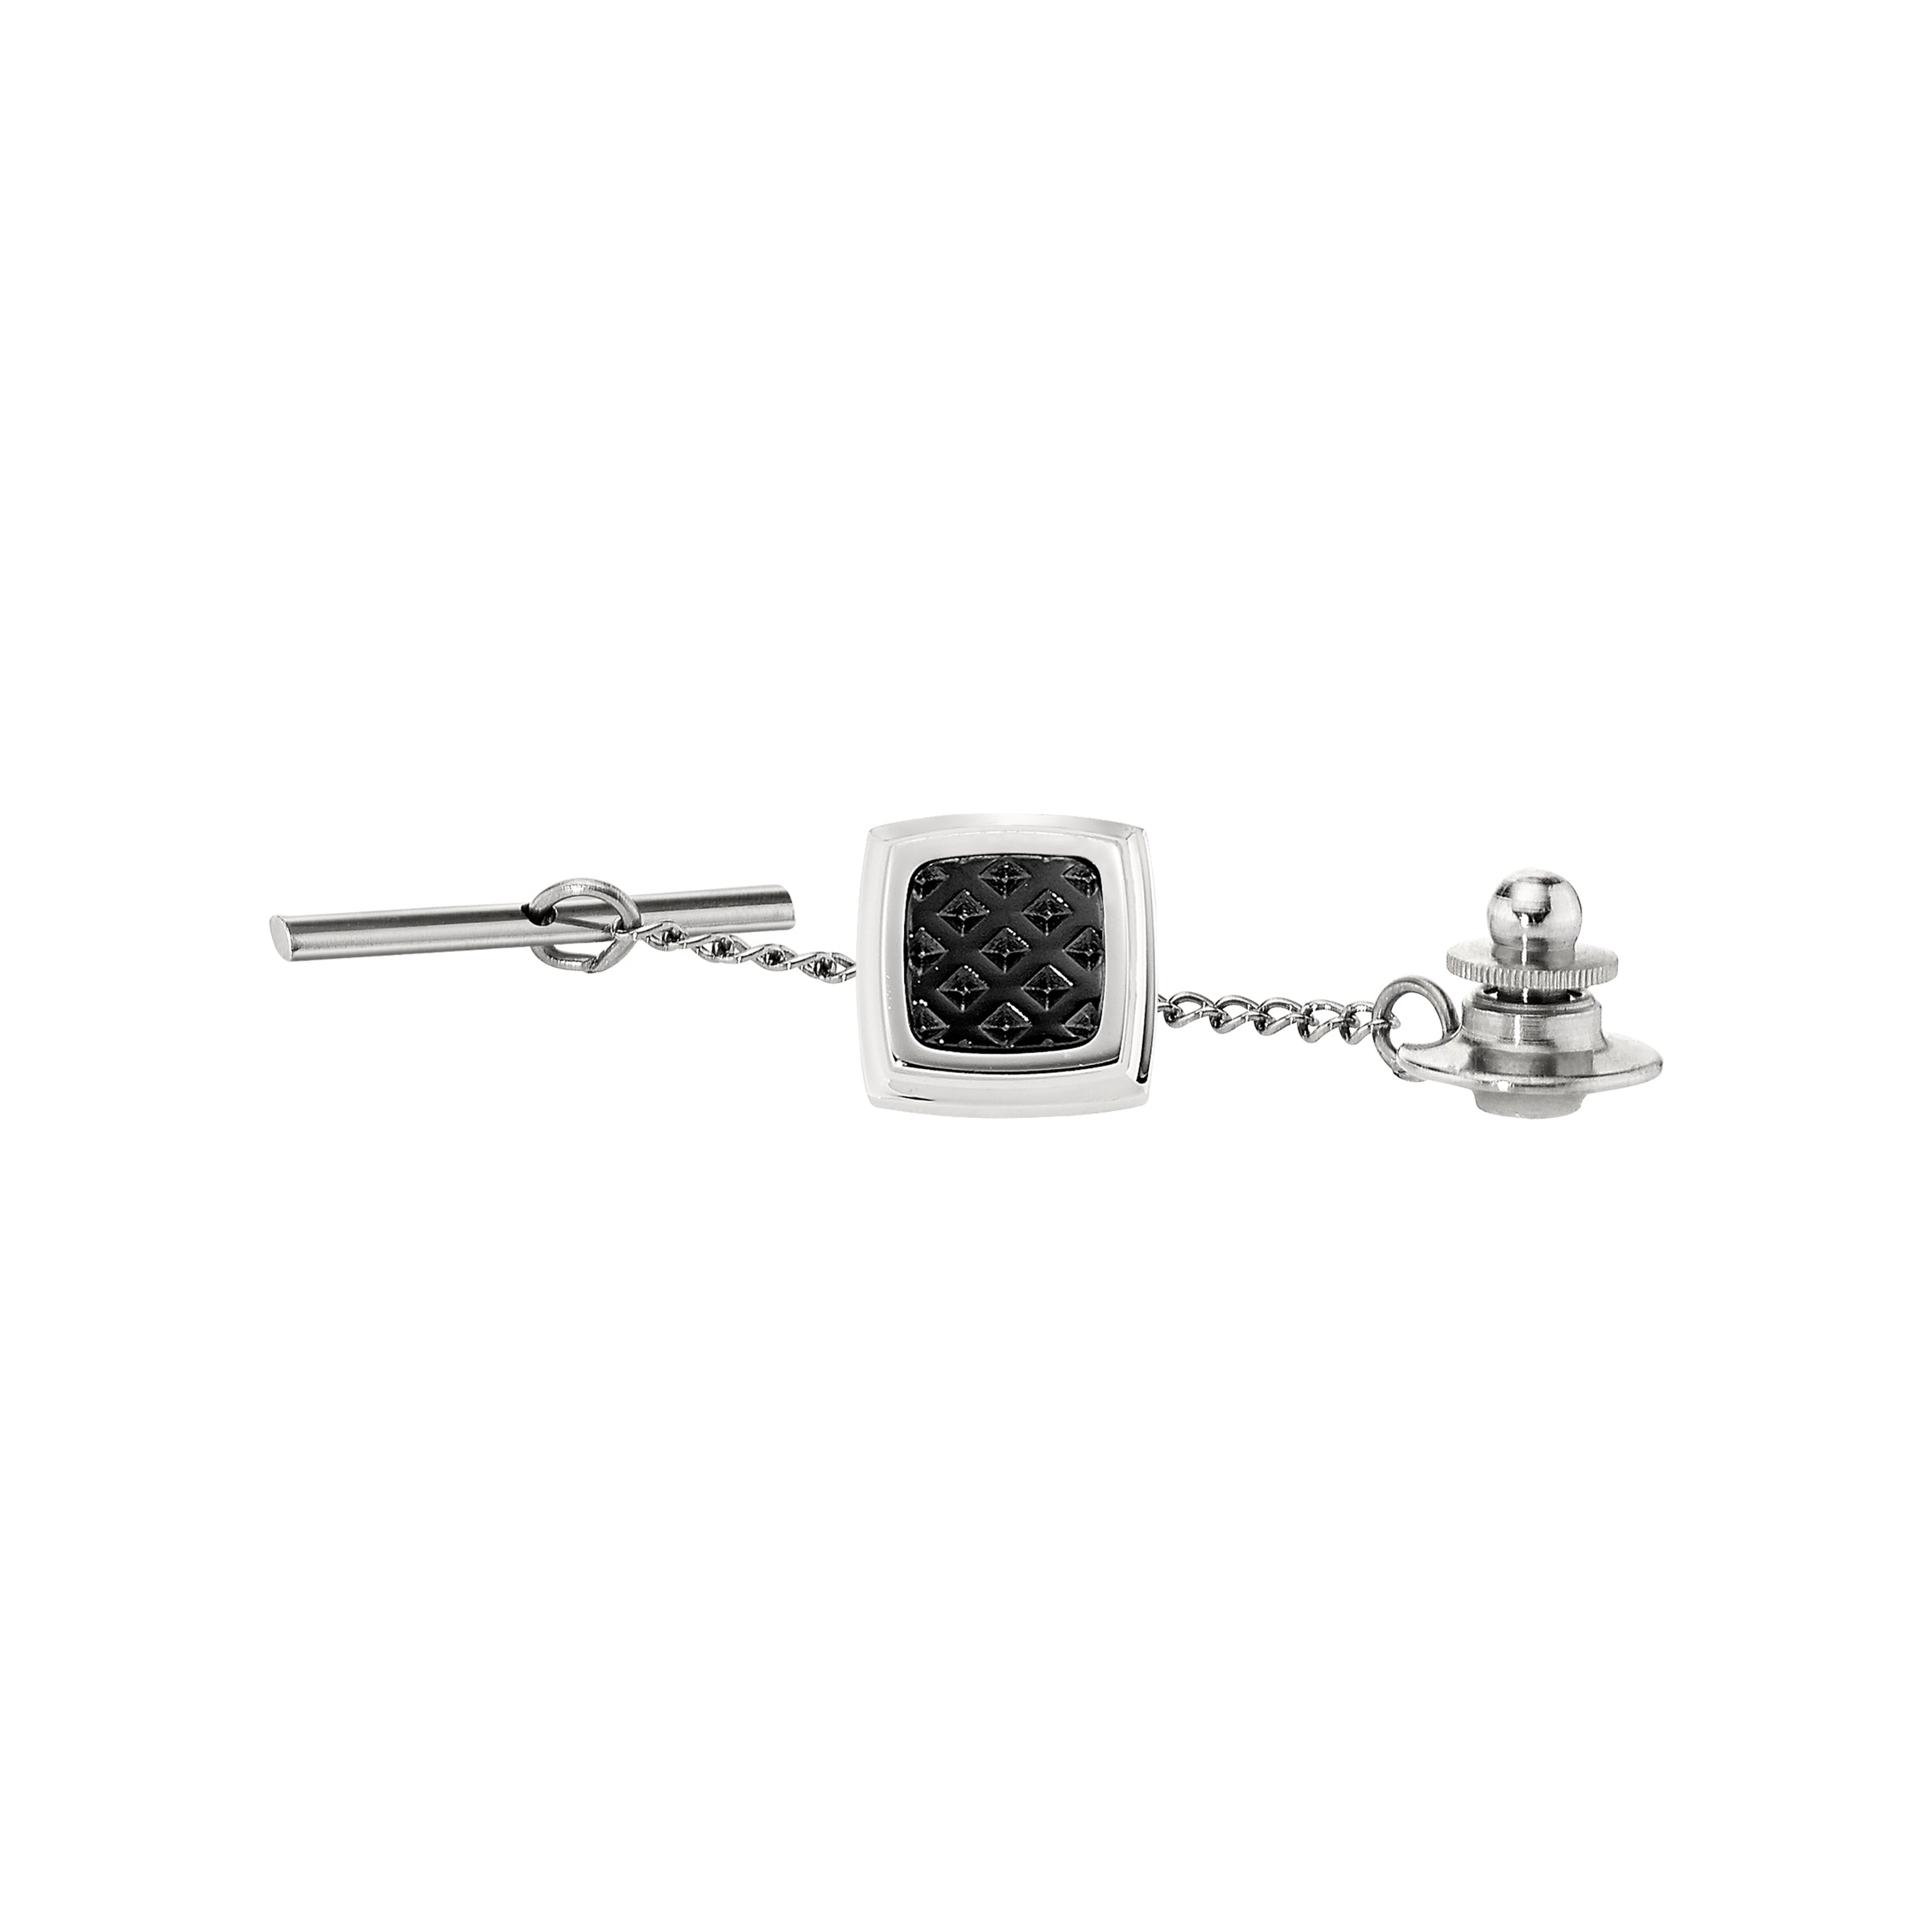 Black Textured Tie Pin, Stainless Steel